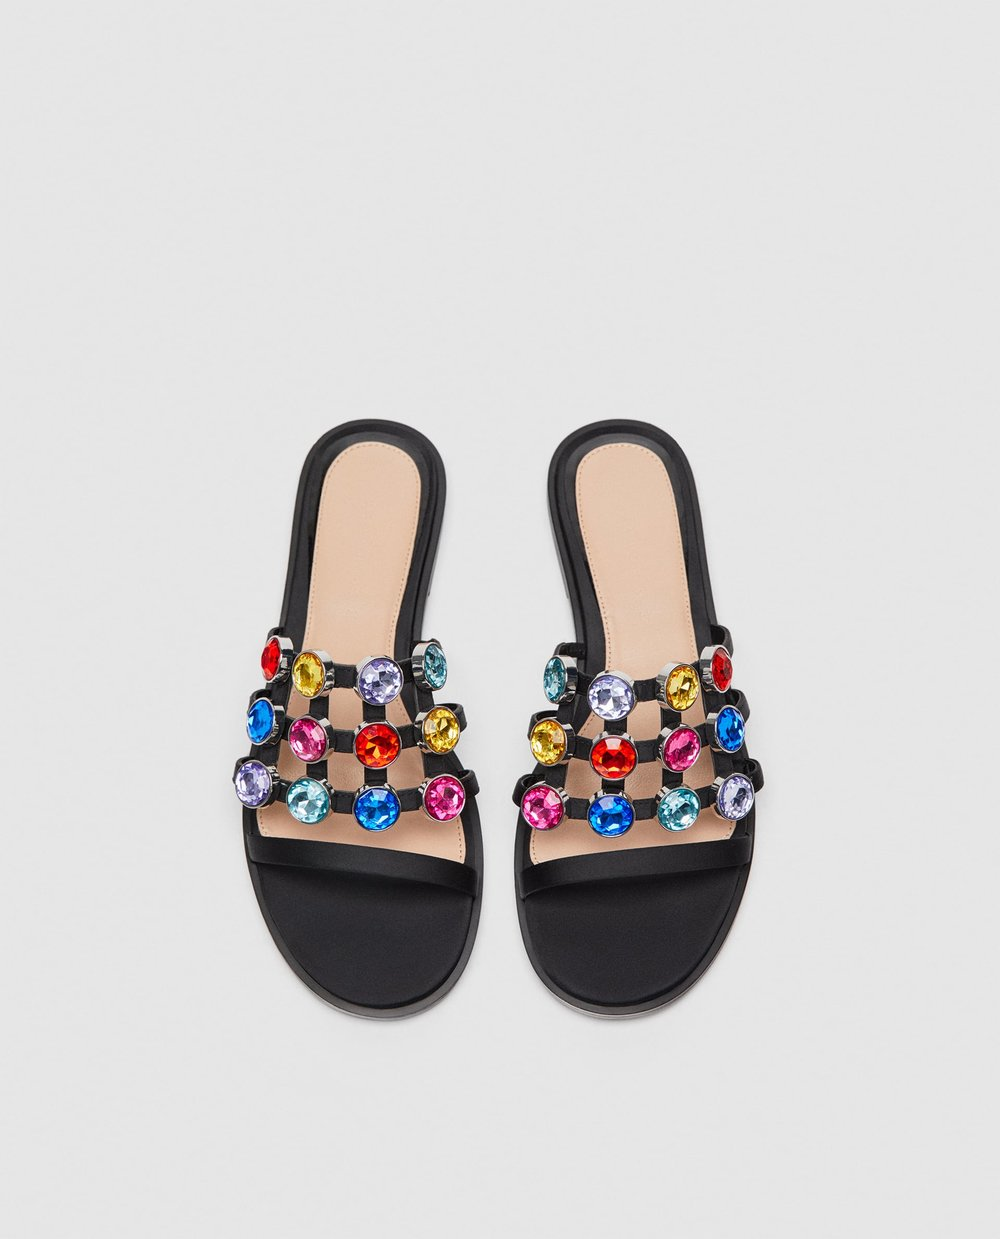 Multicolored bejeweled sandals, $70